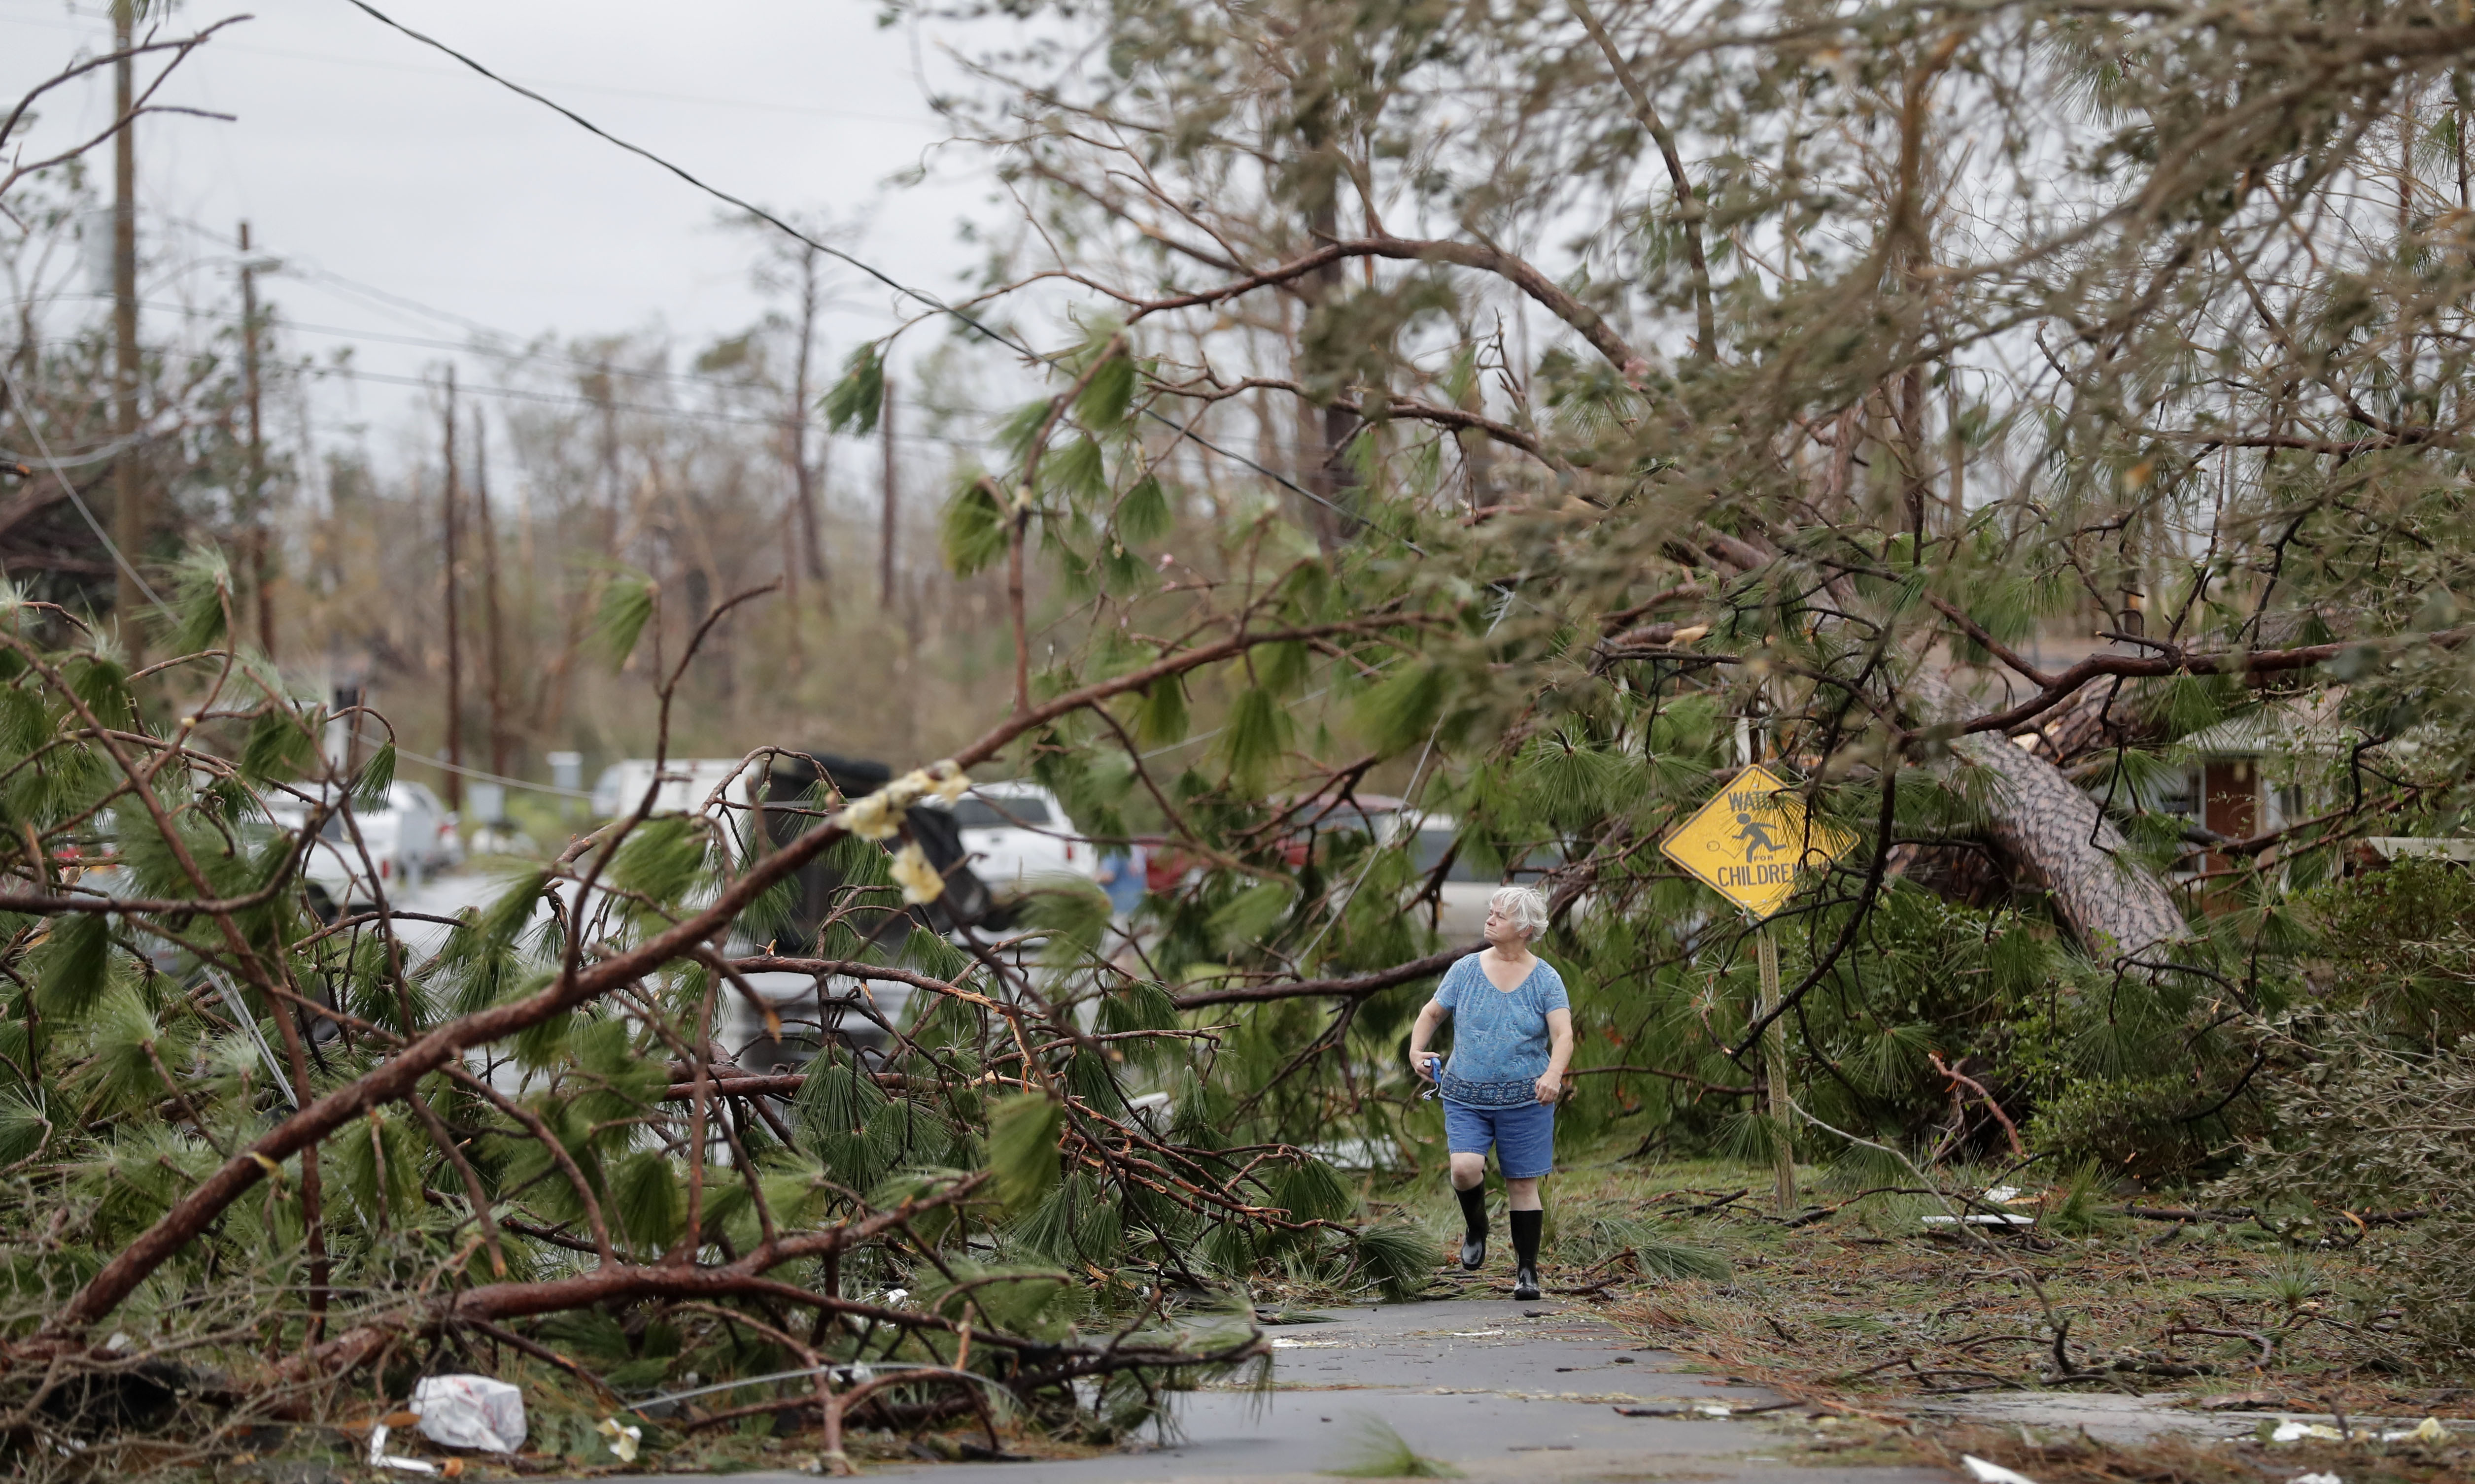 Carol Ralph walks through downed trees blocking her heavily damaged neighborhood just after Hurricane Michael passed through in Panama City, Fla., Wednesday, Oct. 10, 2018.